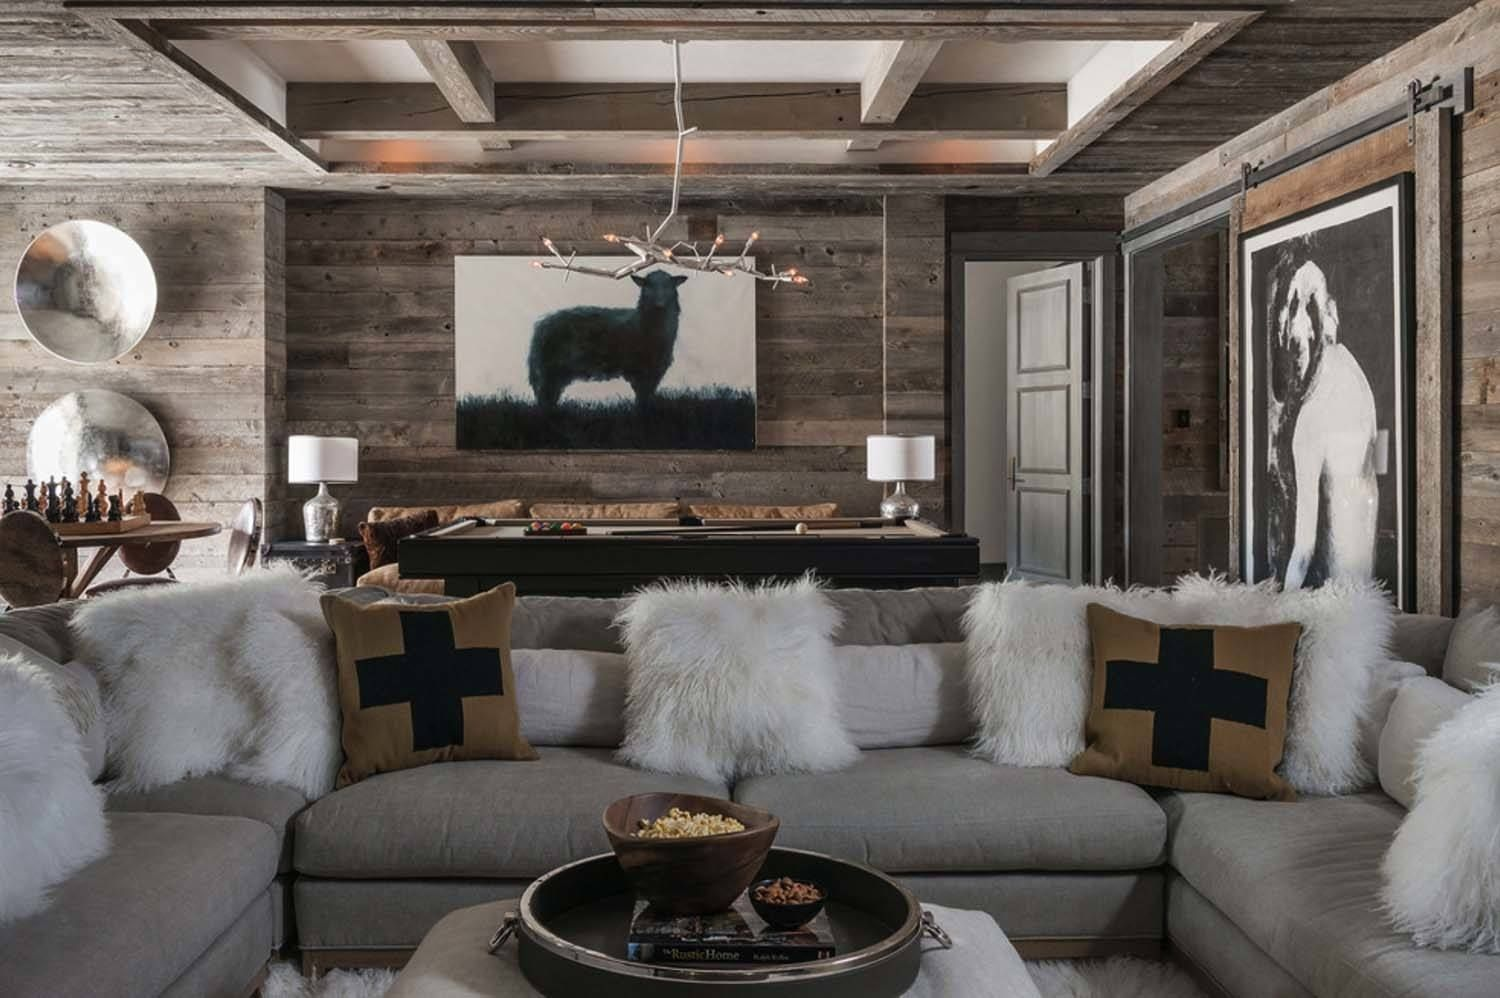 Ski in ski out chalet in montana with rustic modern styling deco